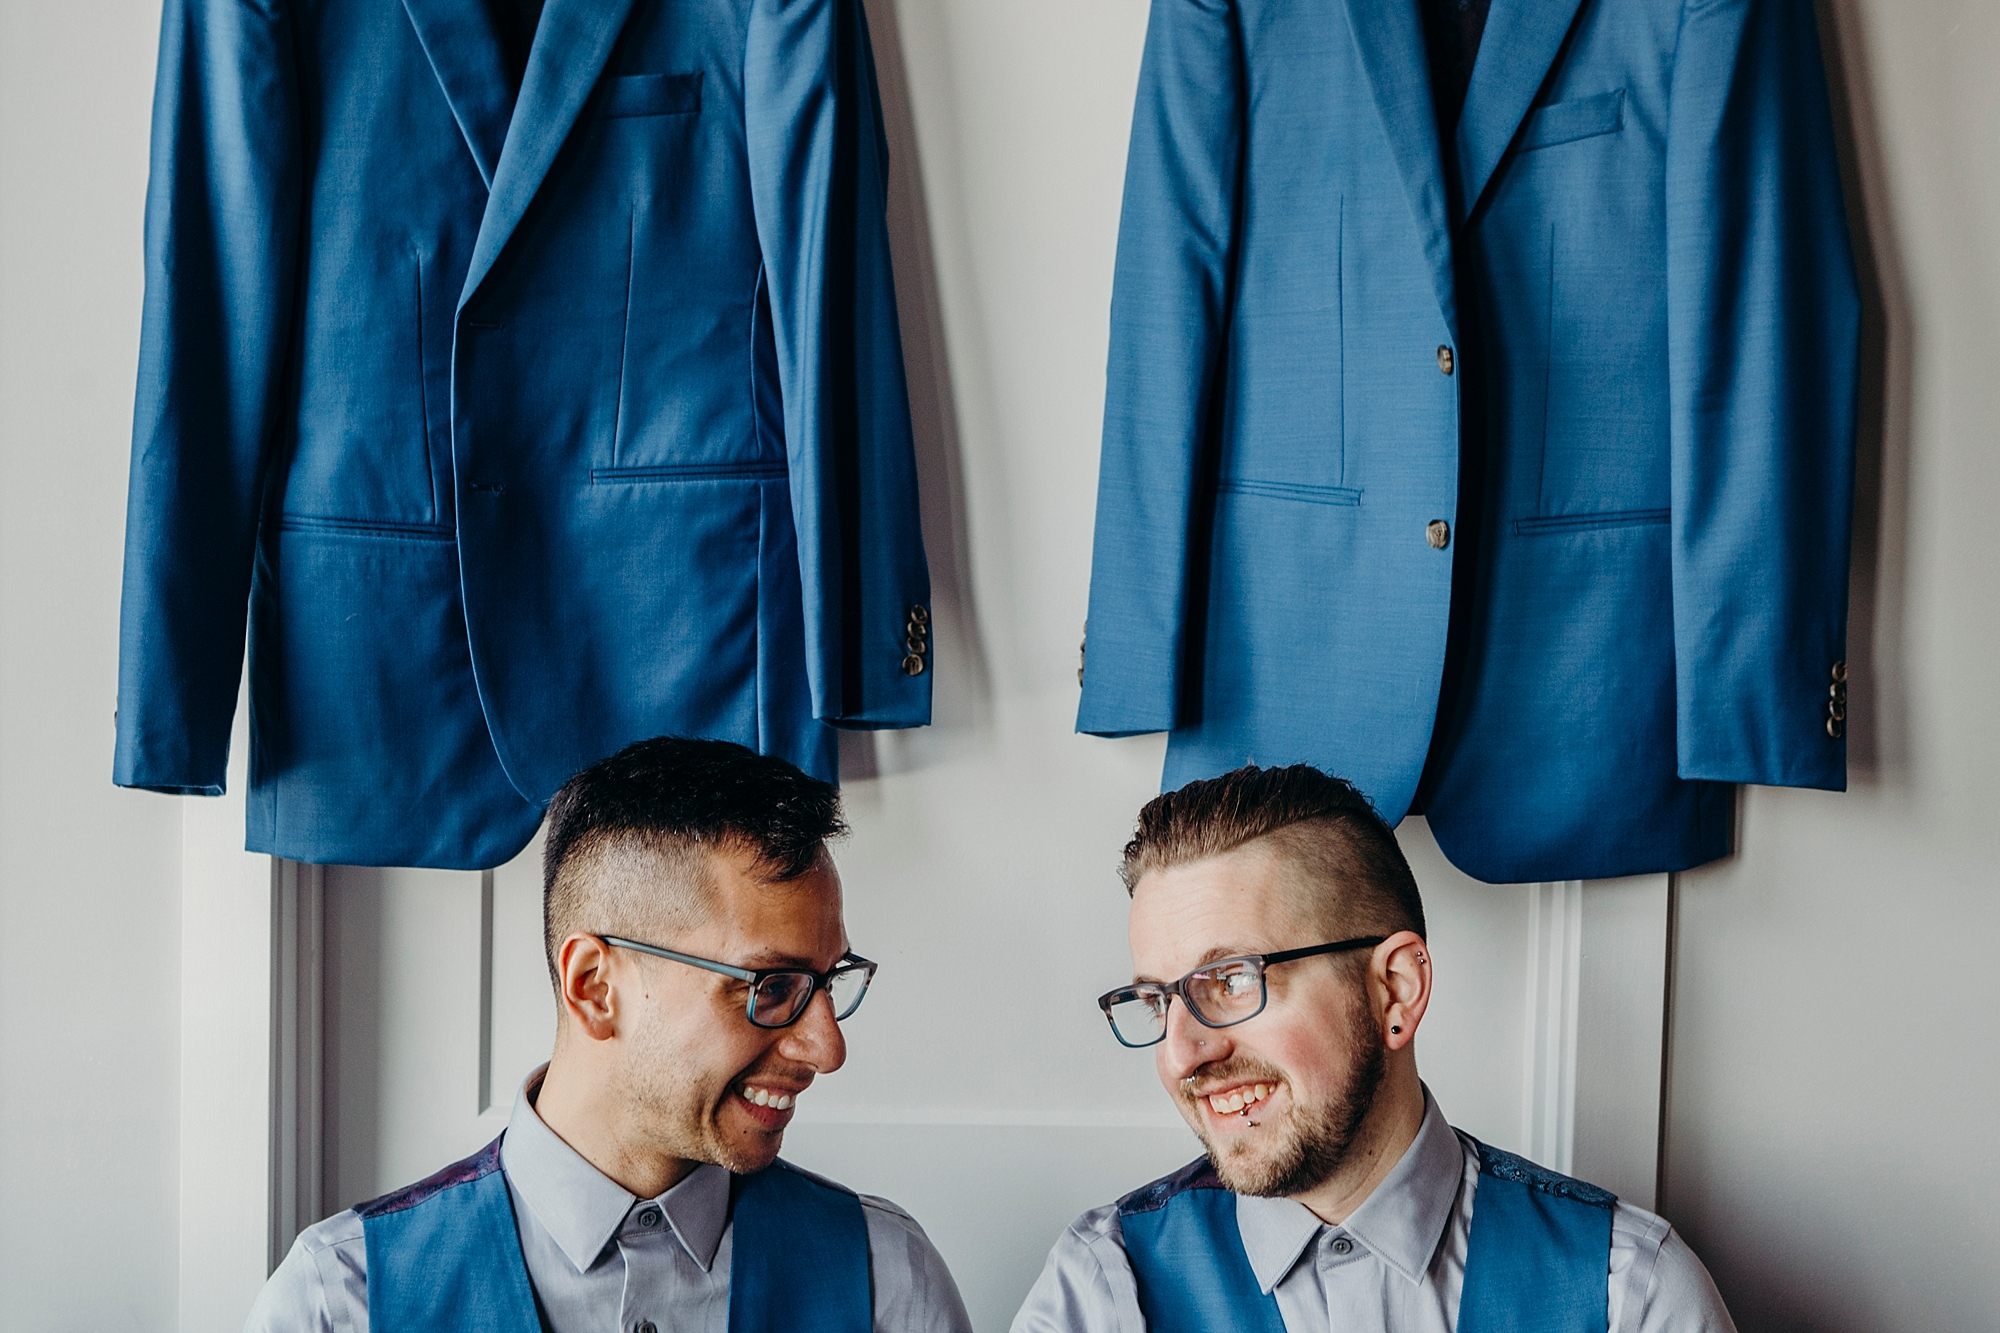 Joe_Mac_Creative_Philadelphia_Philly_LGBT_Gay_Engagement_Wedding_Photography__0043.jpg